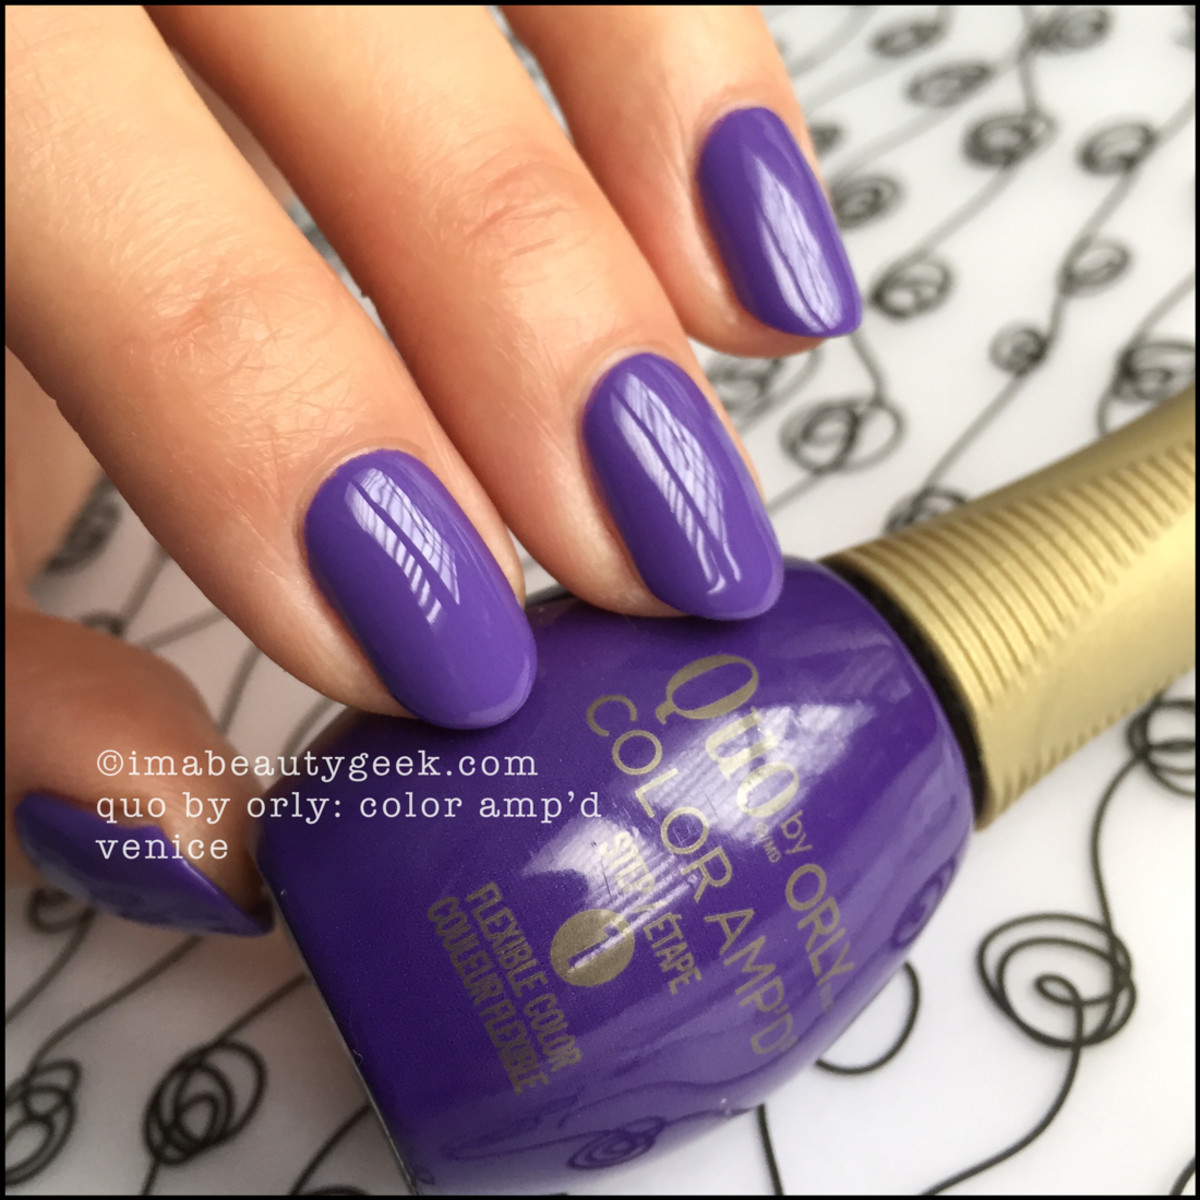 Quo by Orly Color Ampd Venice_Orly Epix Swatches